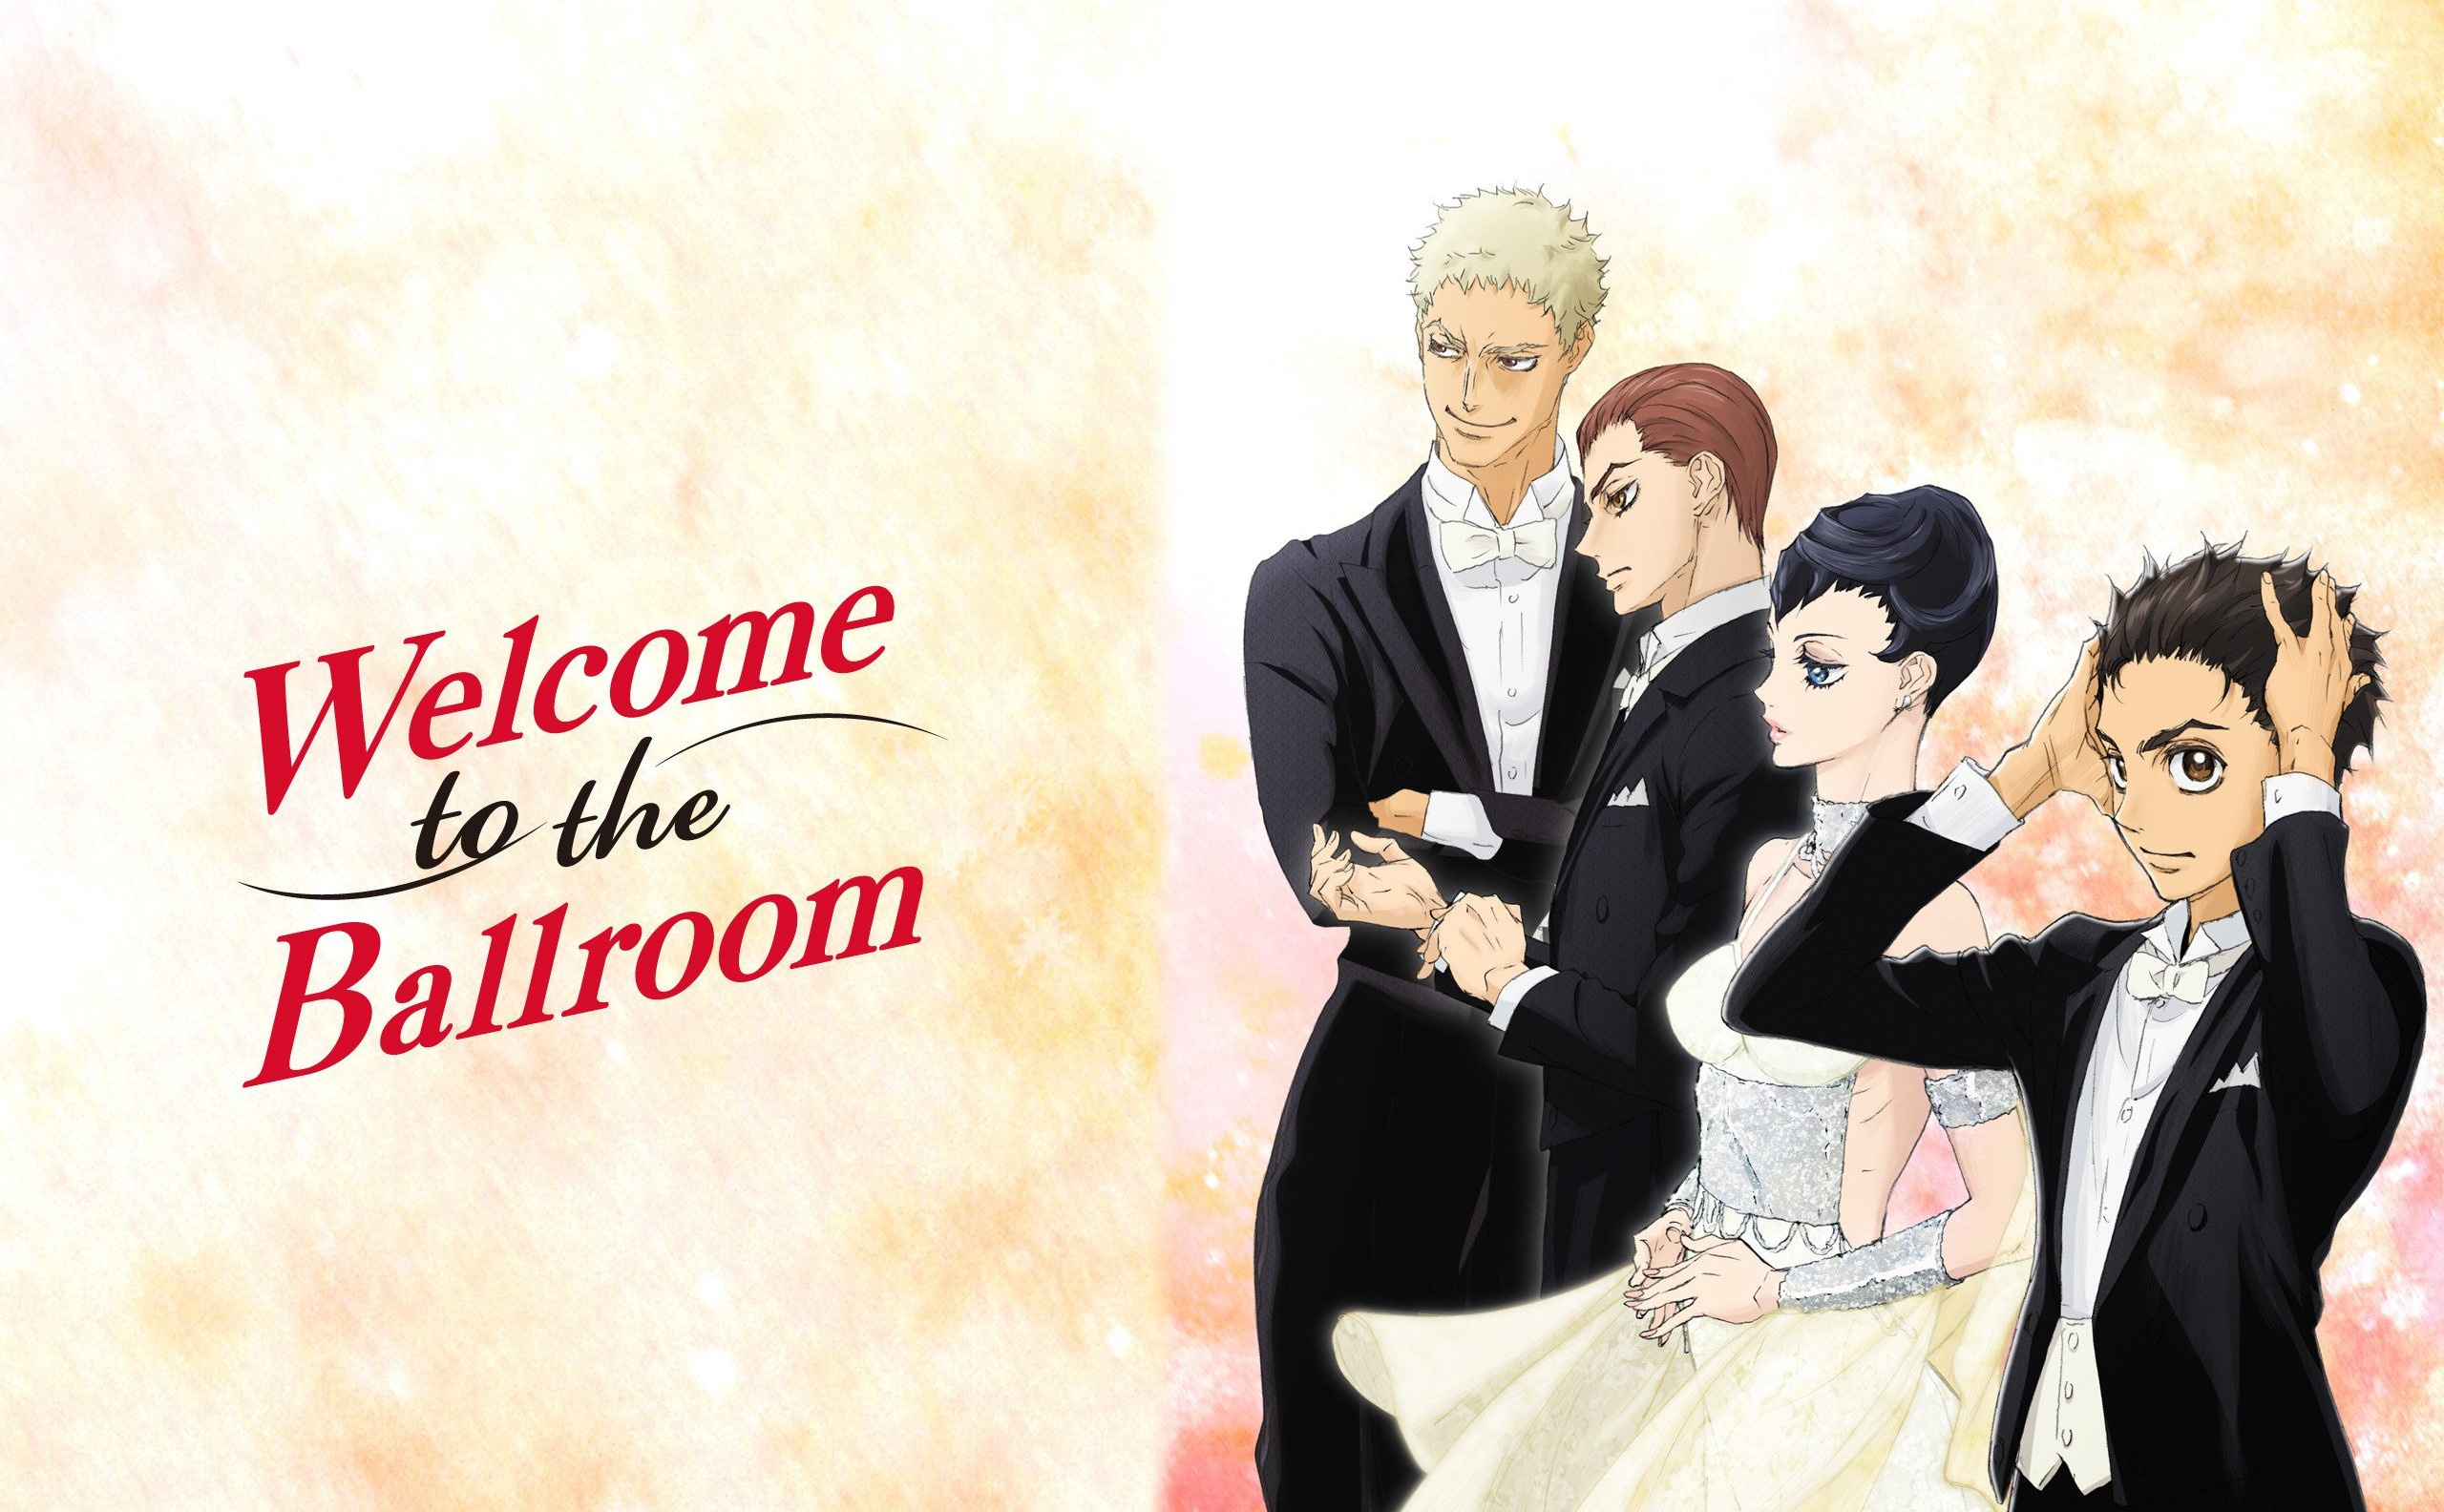 Ballroom Youkoso/ Wellcome to the Ballroom